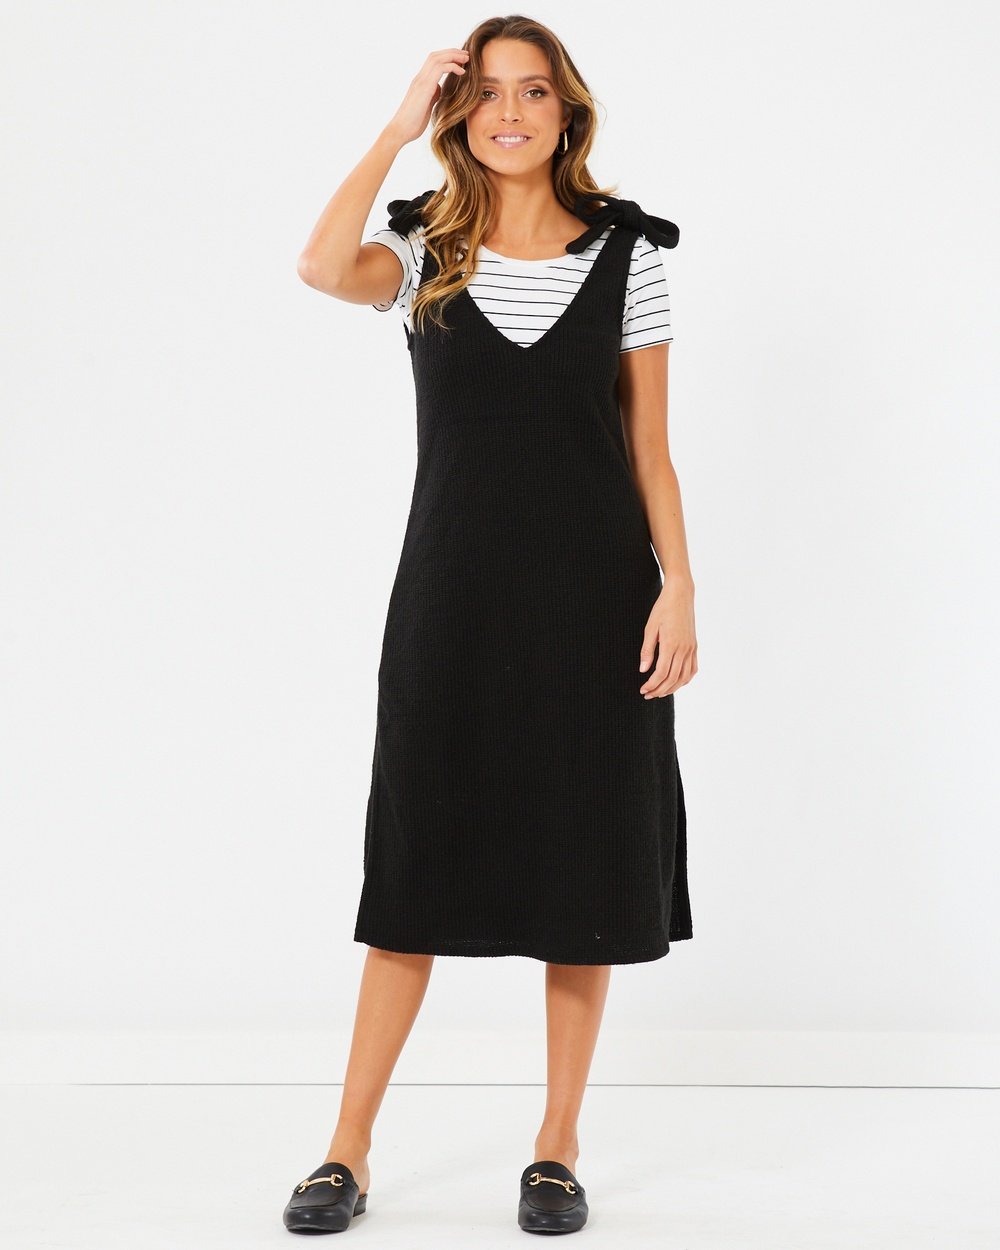 Calli Lilla Dress Dresses Black Knit Lilla Dress